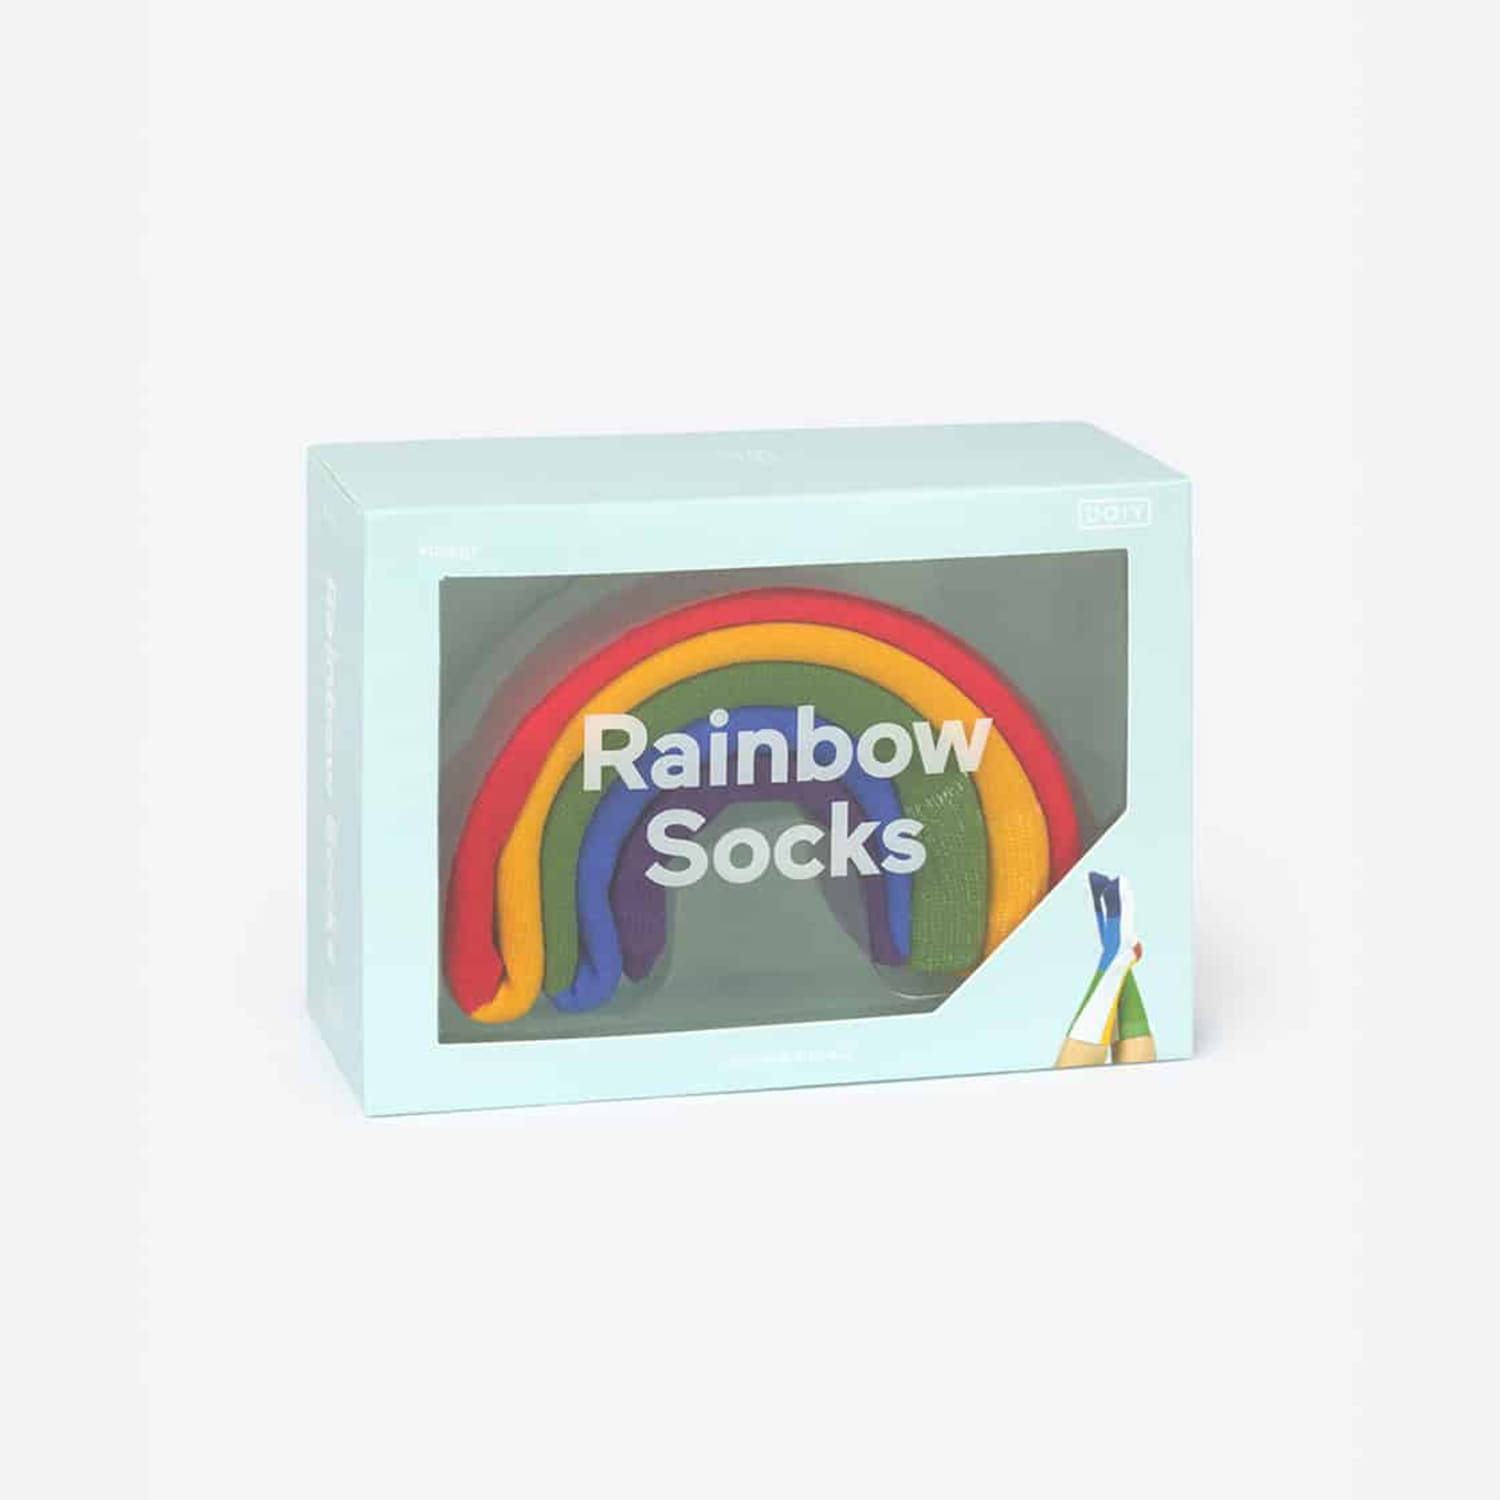 Classic Rainbow Socks Accessories - Doiy - Novelty - Pride -